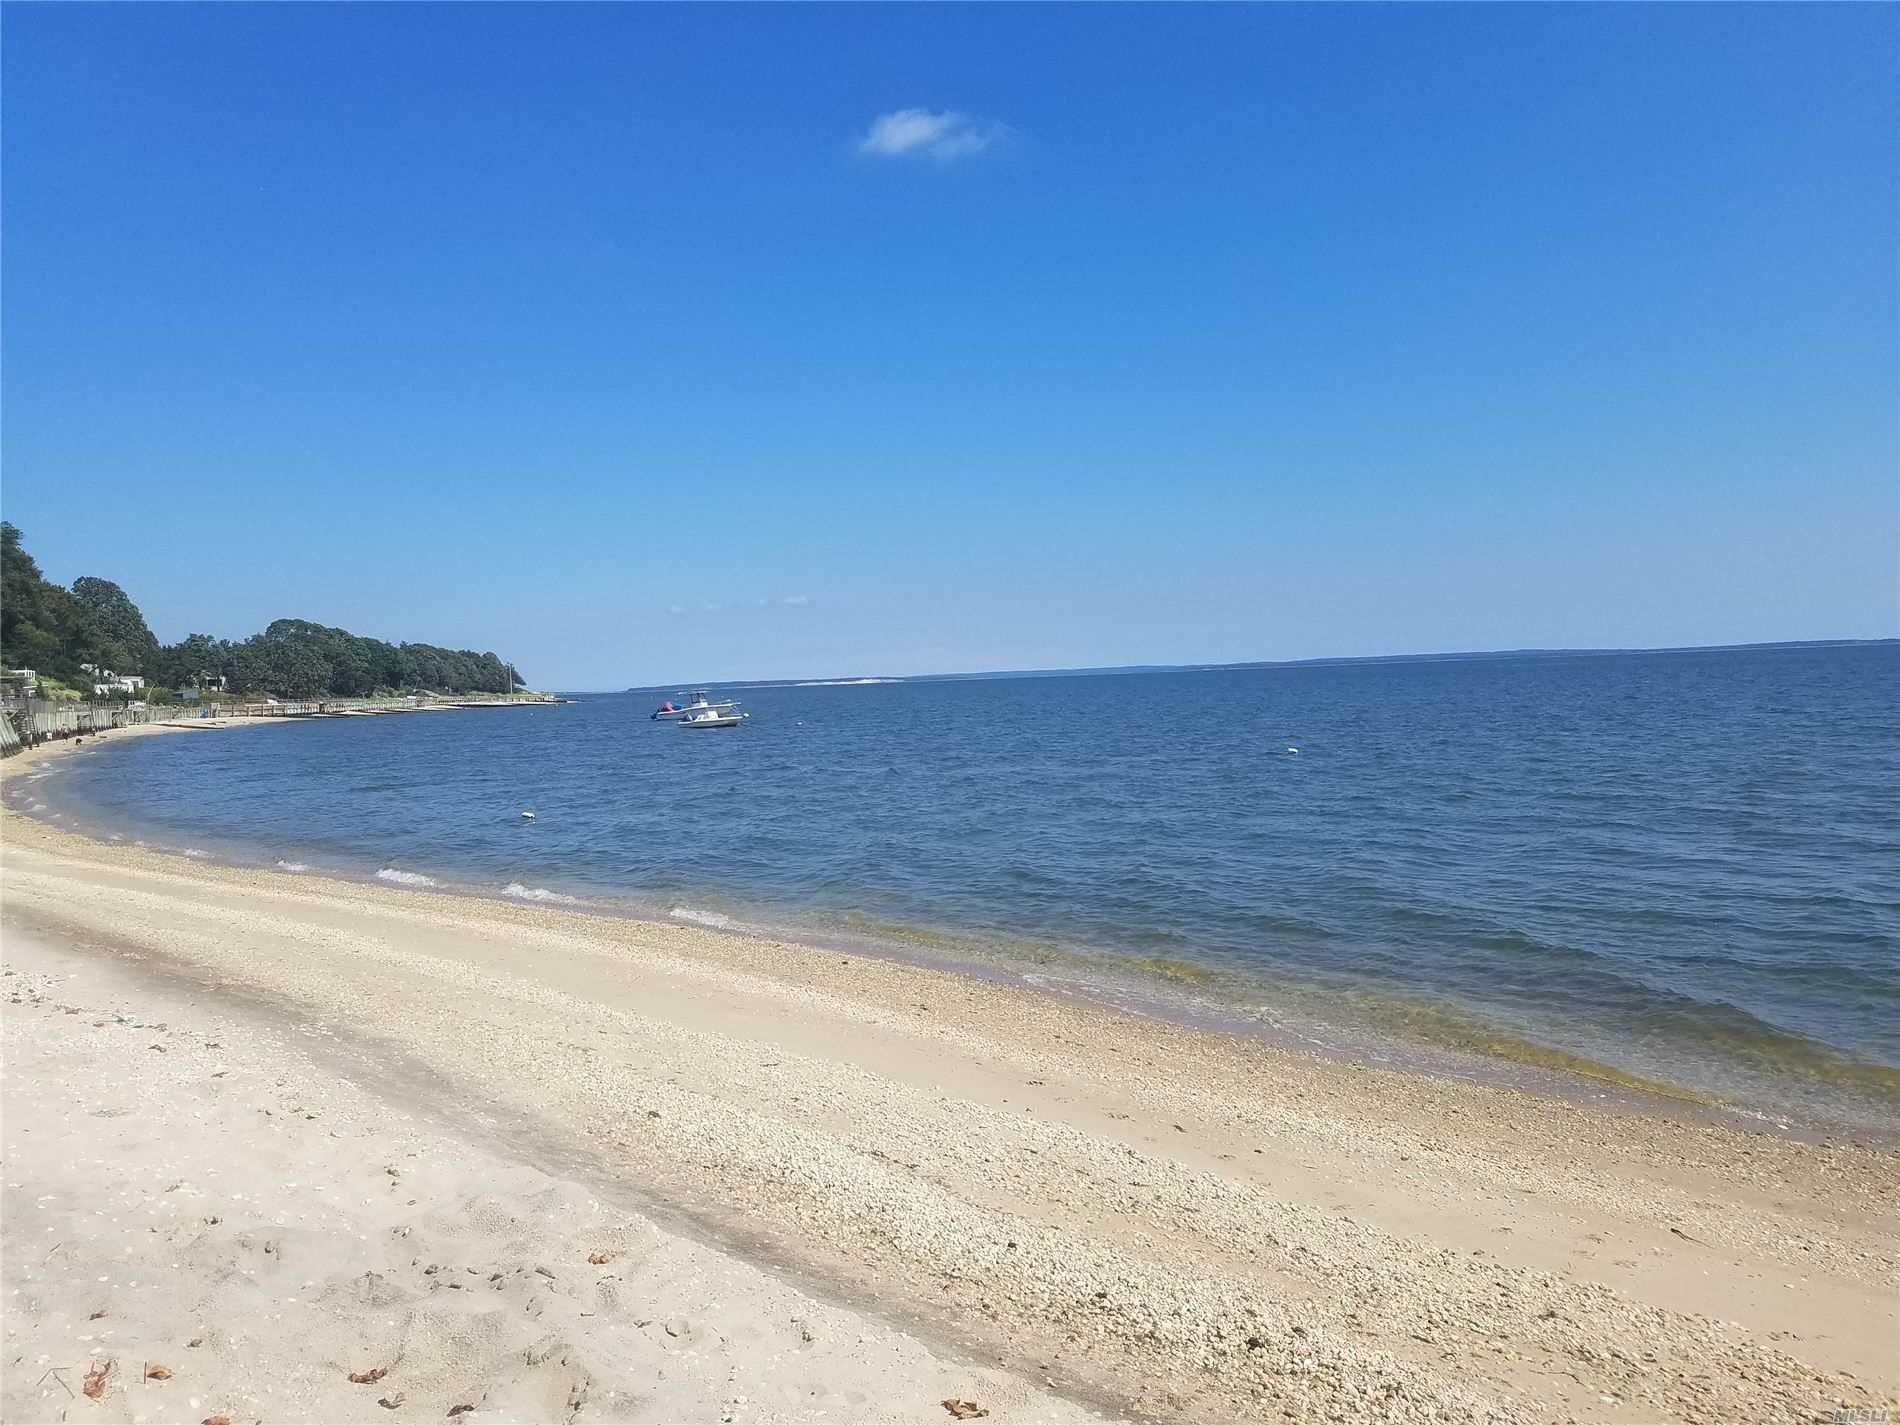 48 Williamson, Jamesport, NY 11947 - MLS#: 3216190